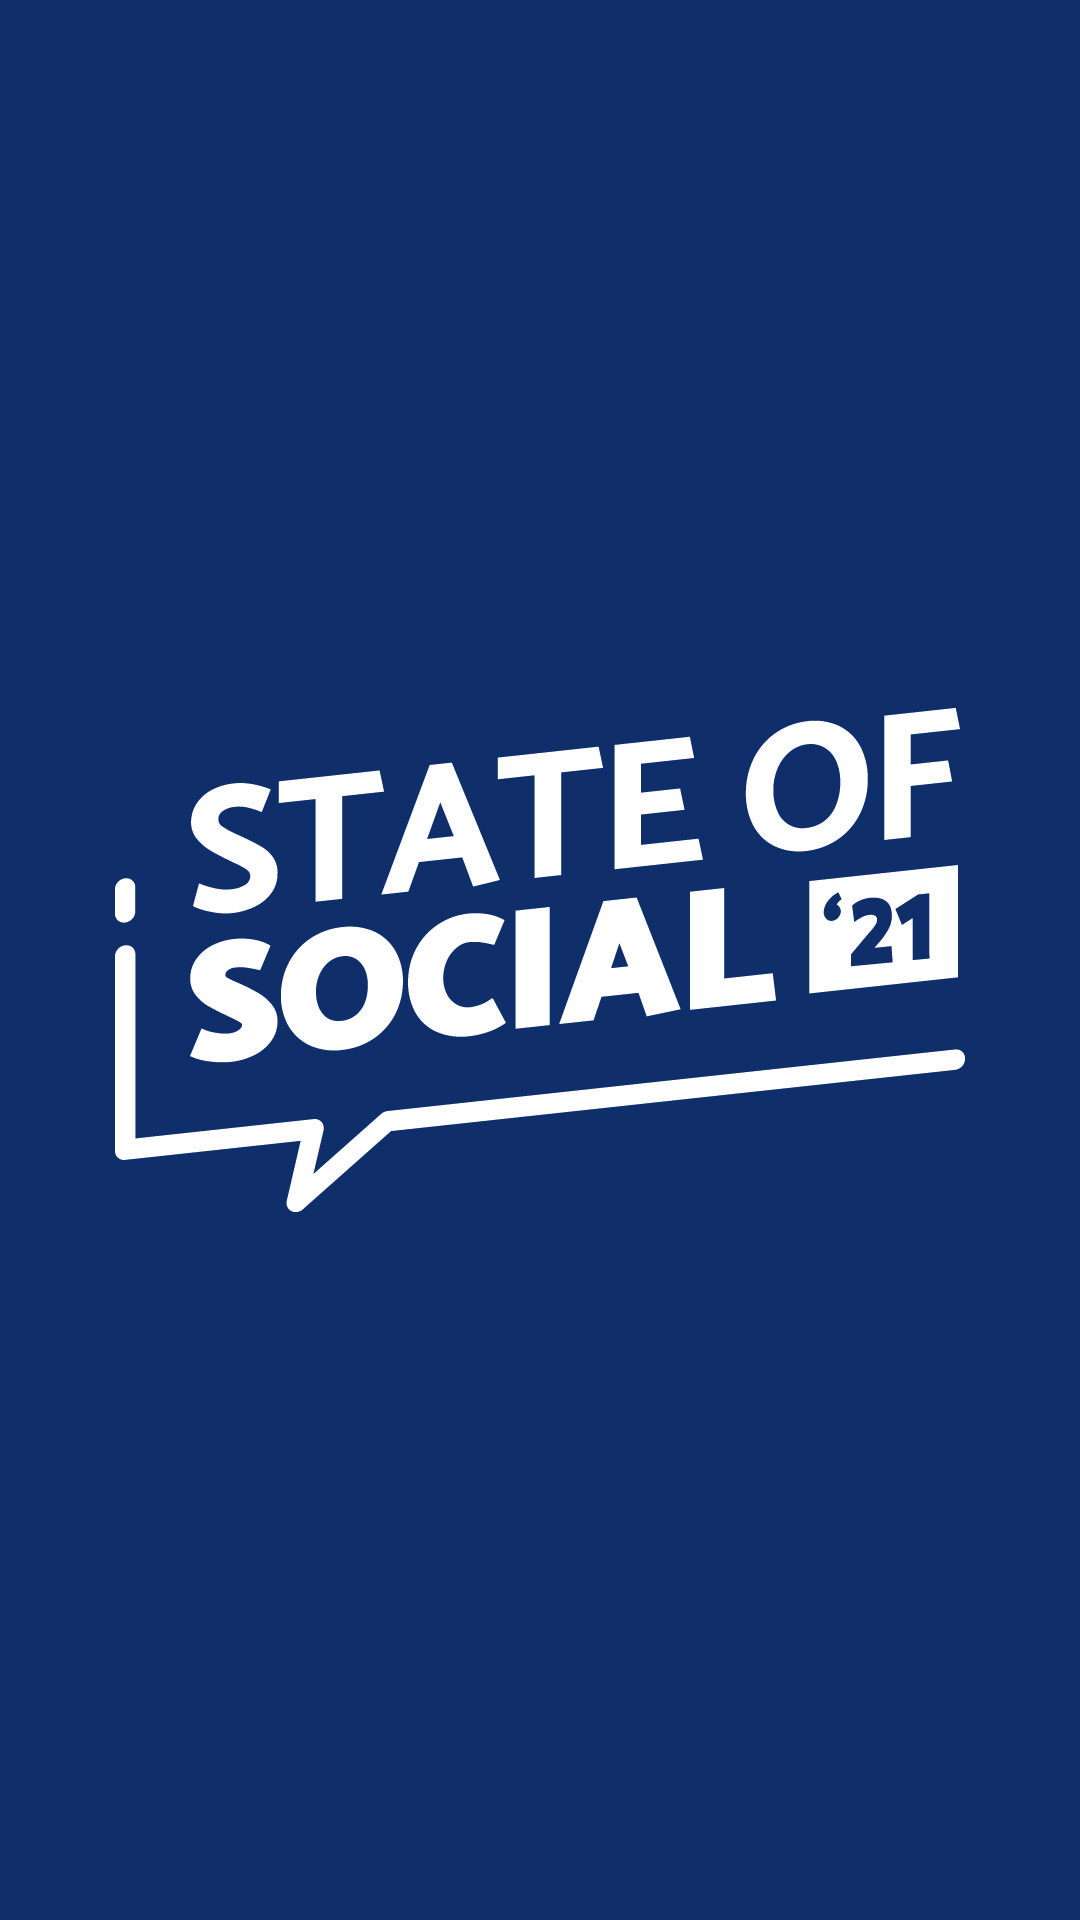 State of Social \'21